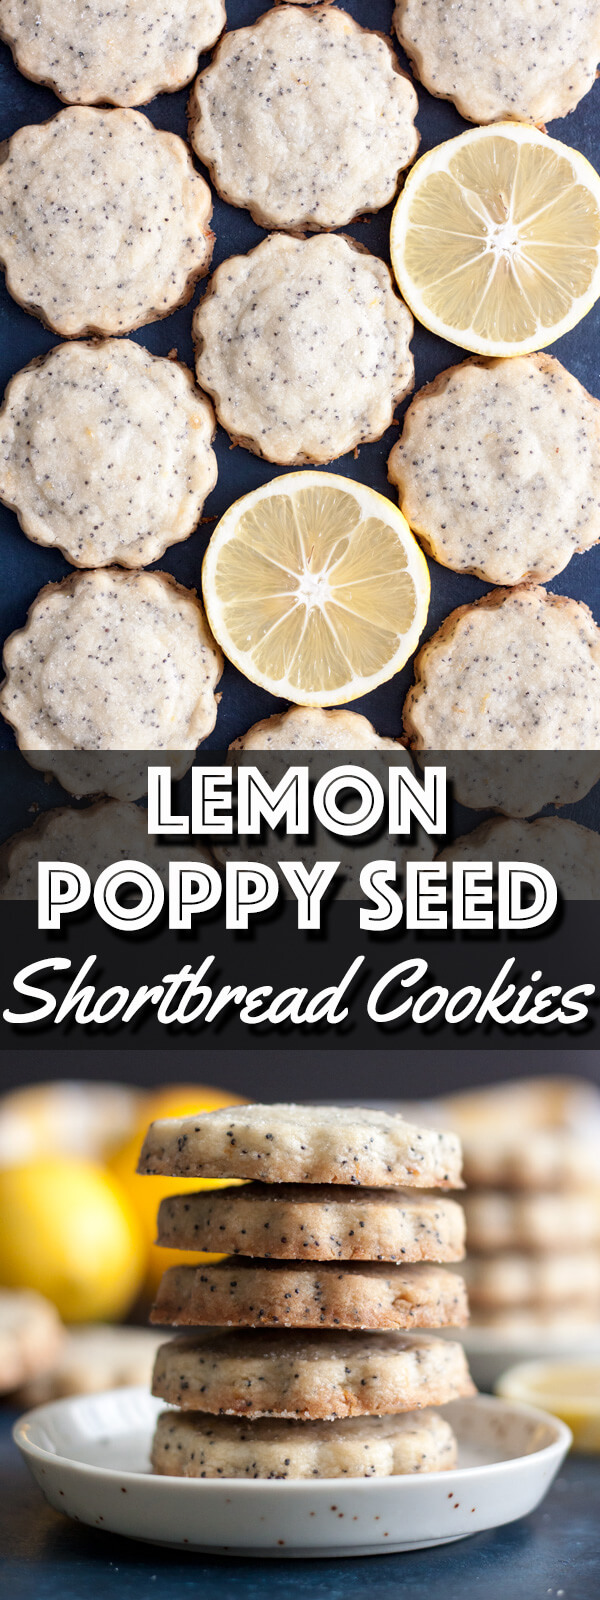 These Lemon Poppy Seed Shortbread Cookies are packed full of poppy seeds and the sweet tangy flavor of lemon. It's the perfect bite to lift you into a happy mood. | wildwildwhisk.com #lemon #poppyseed #shortbread